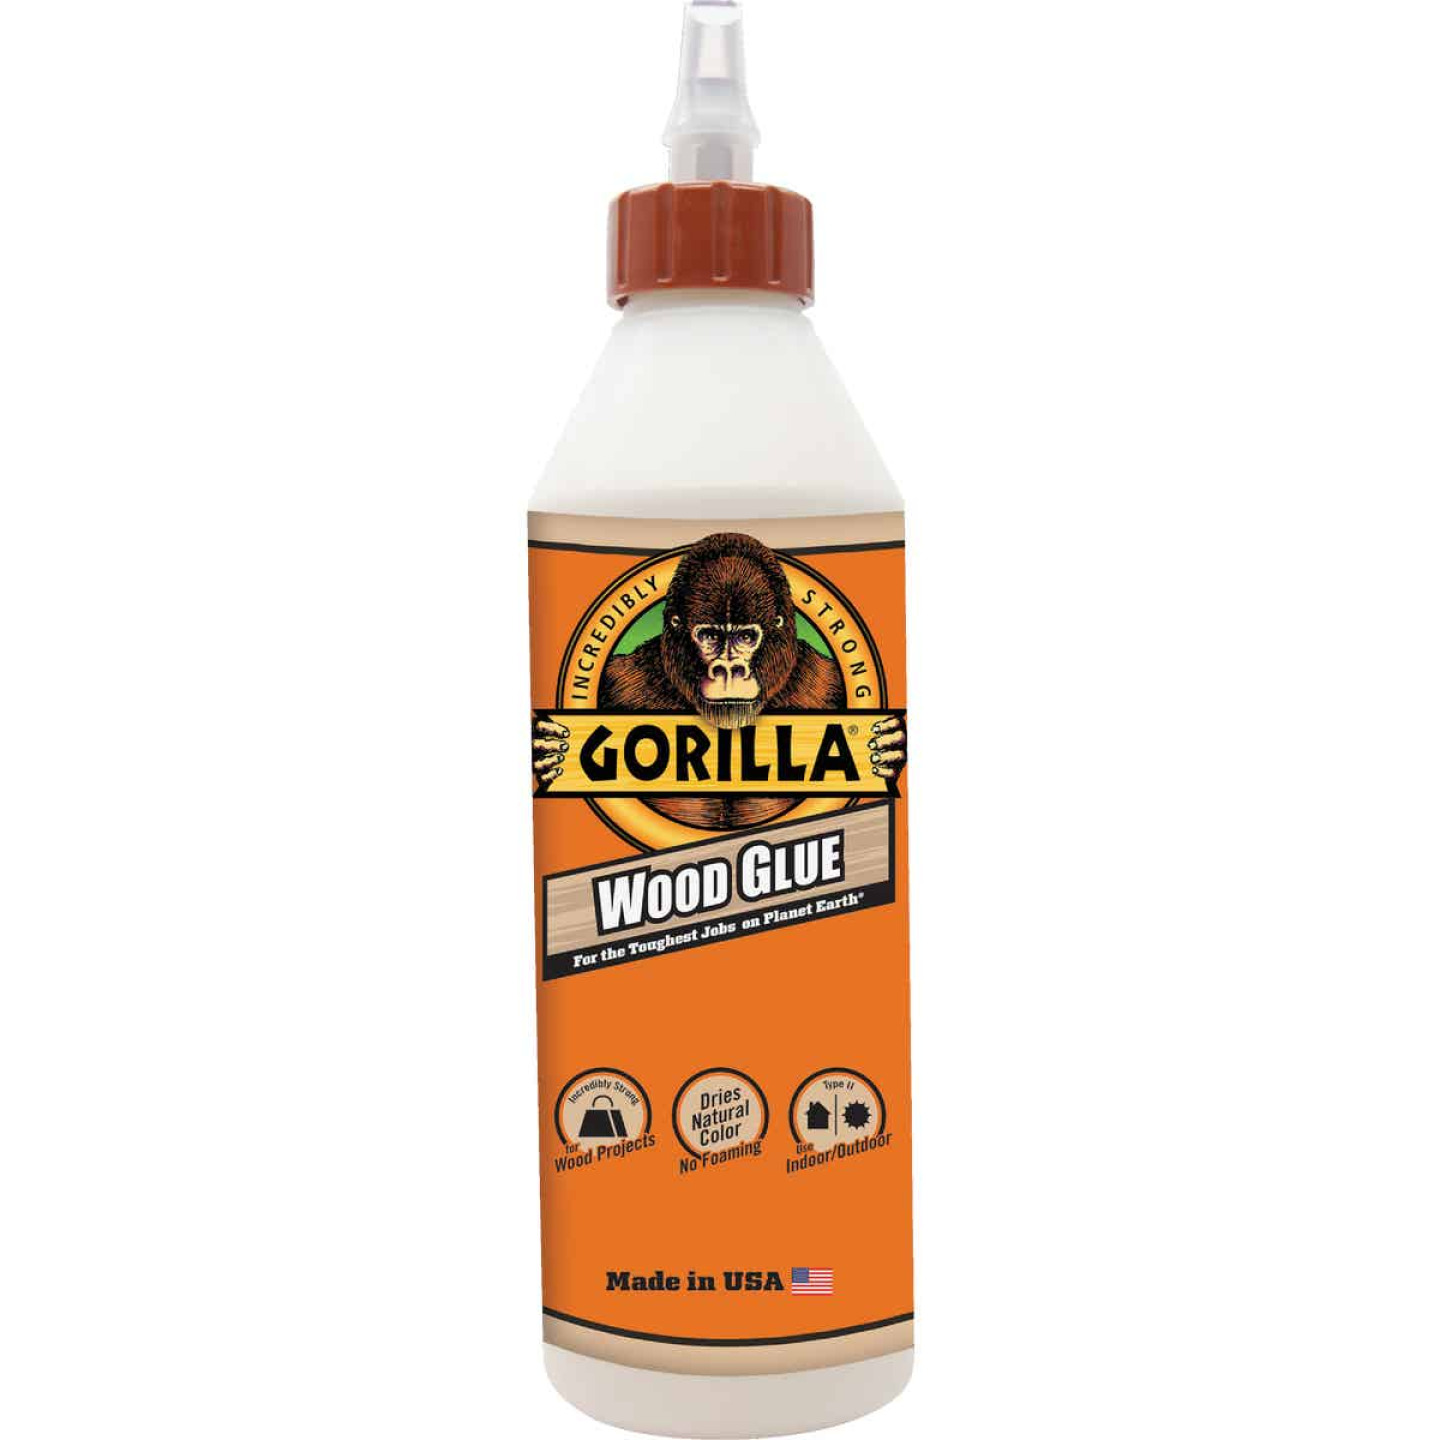 Gorilla 36 Oz. Wood Glue Image 1